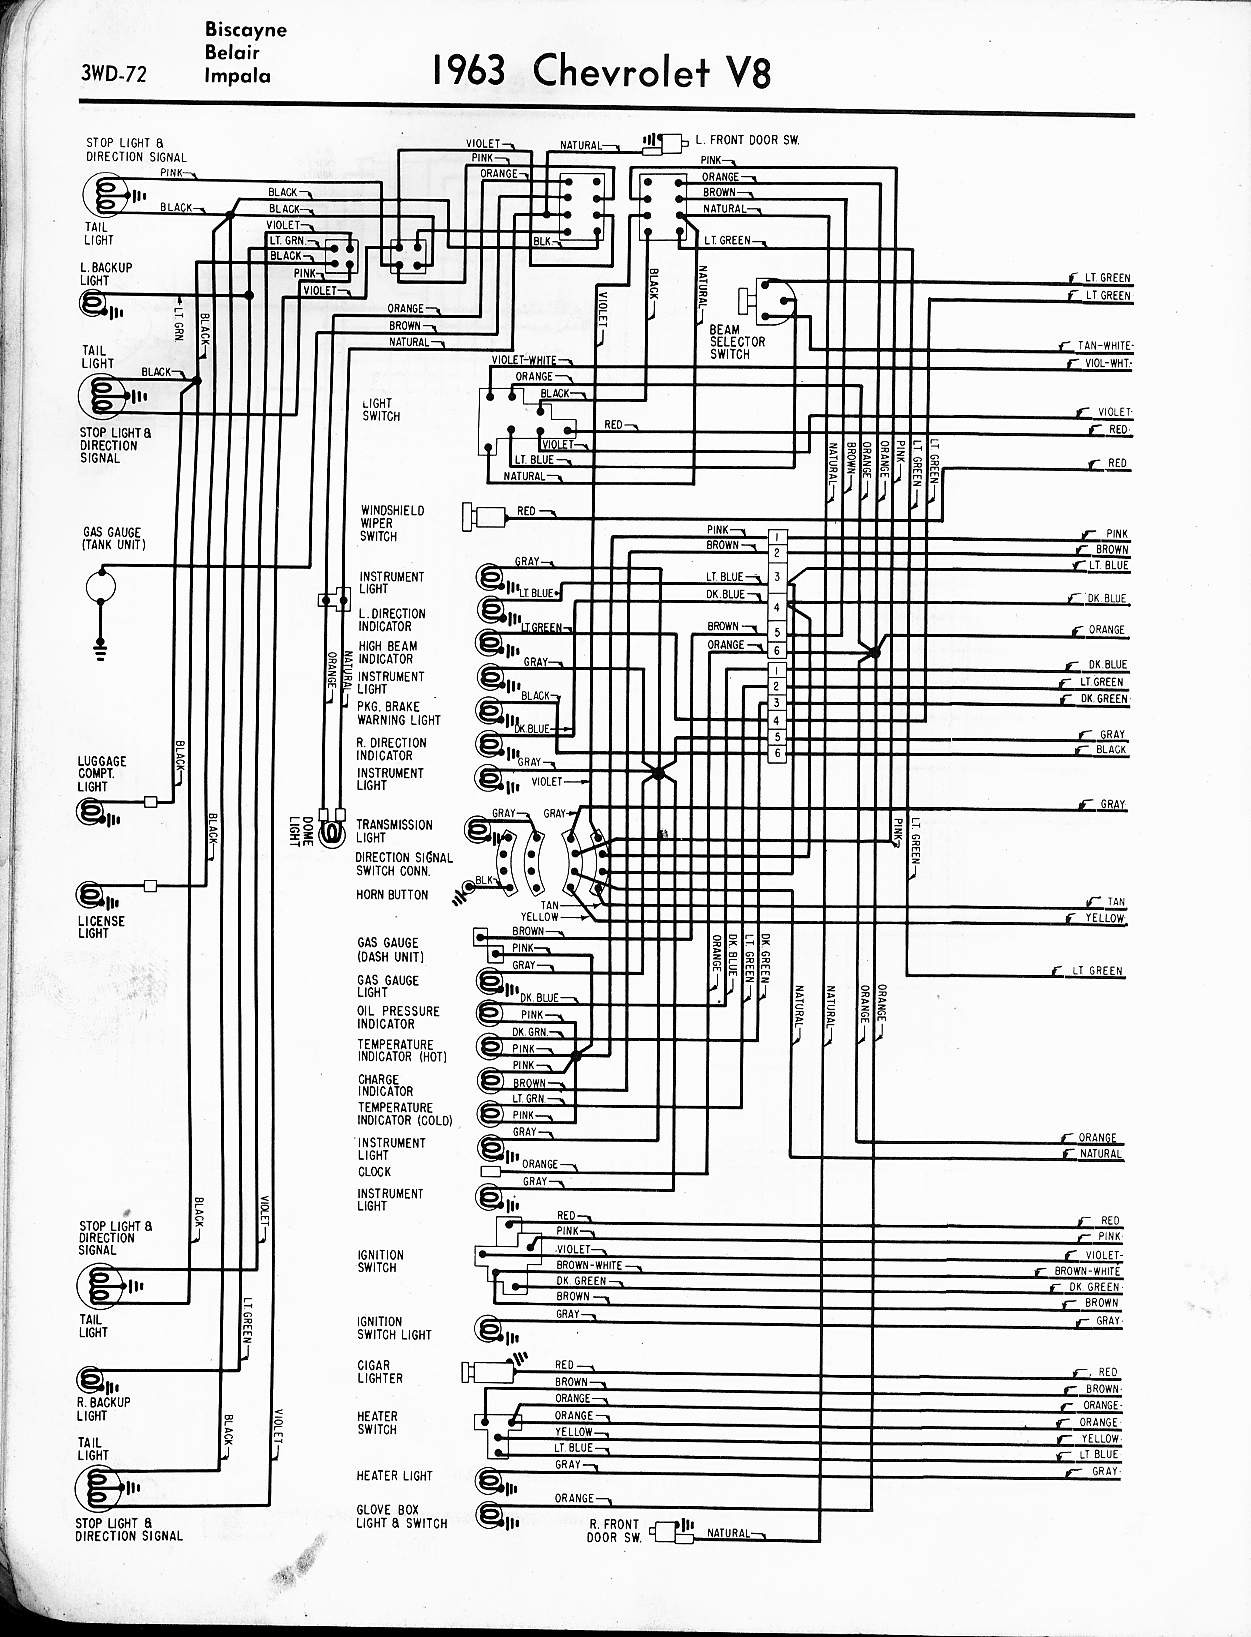 Door Wiring Diagram 2003 Chevy Impala Trusted Malibu Engine 1967 Harness Stereo